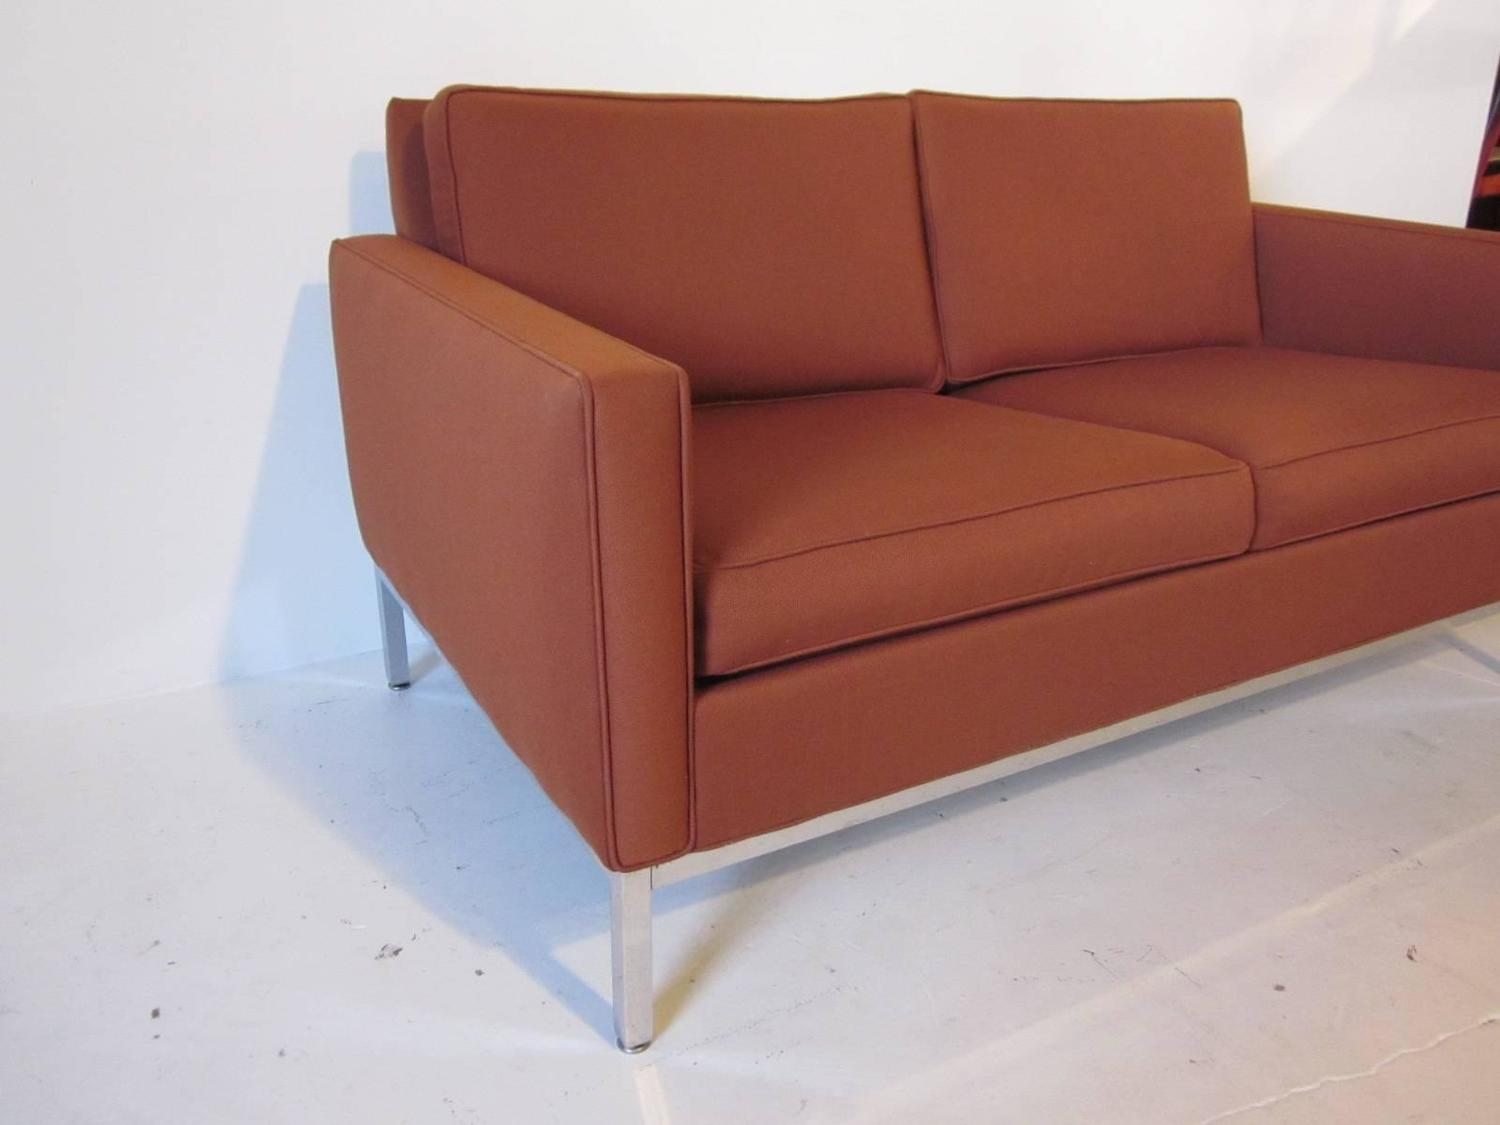 Knoll Steelcase Styled Loveseat Sofa For Sale At 1stdibs